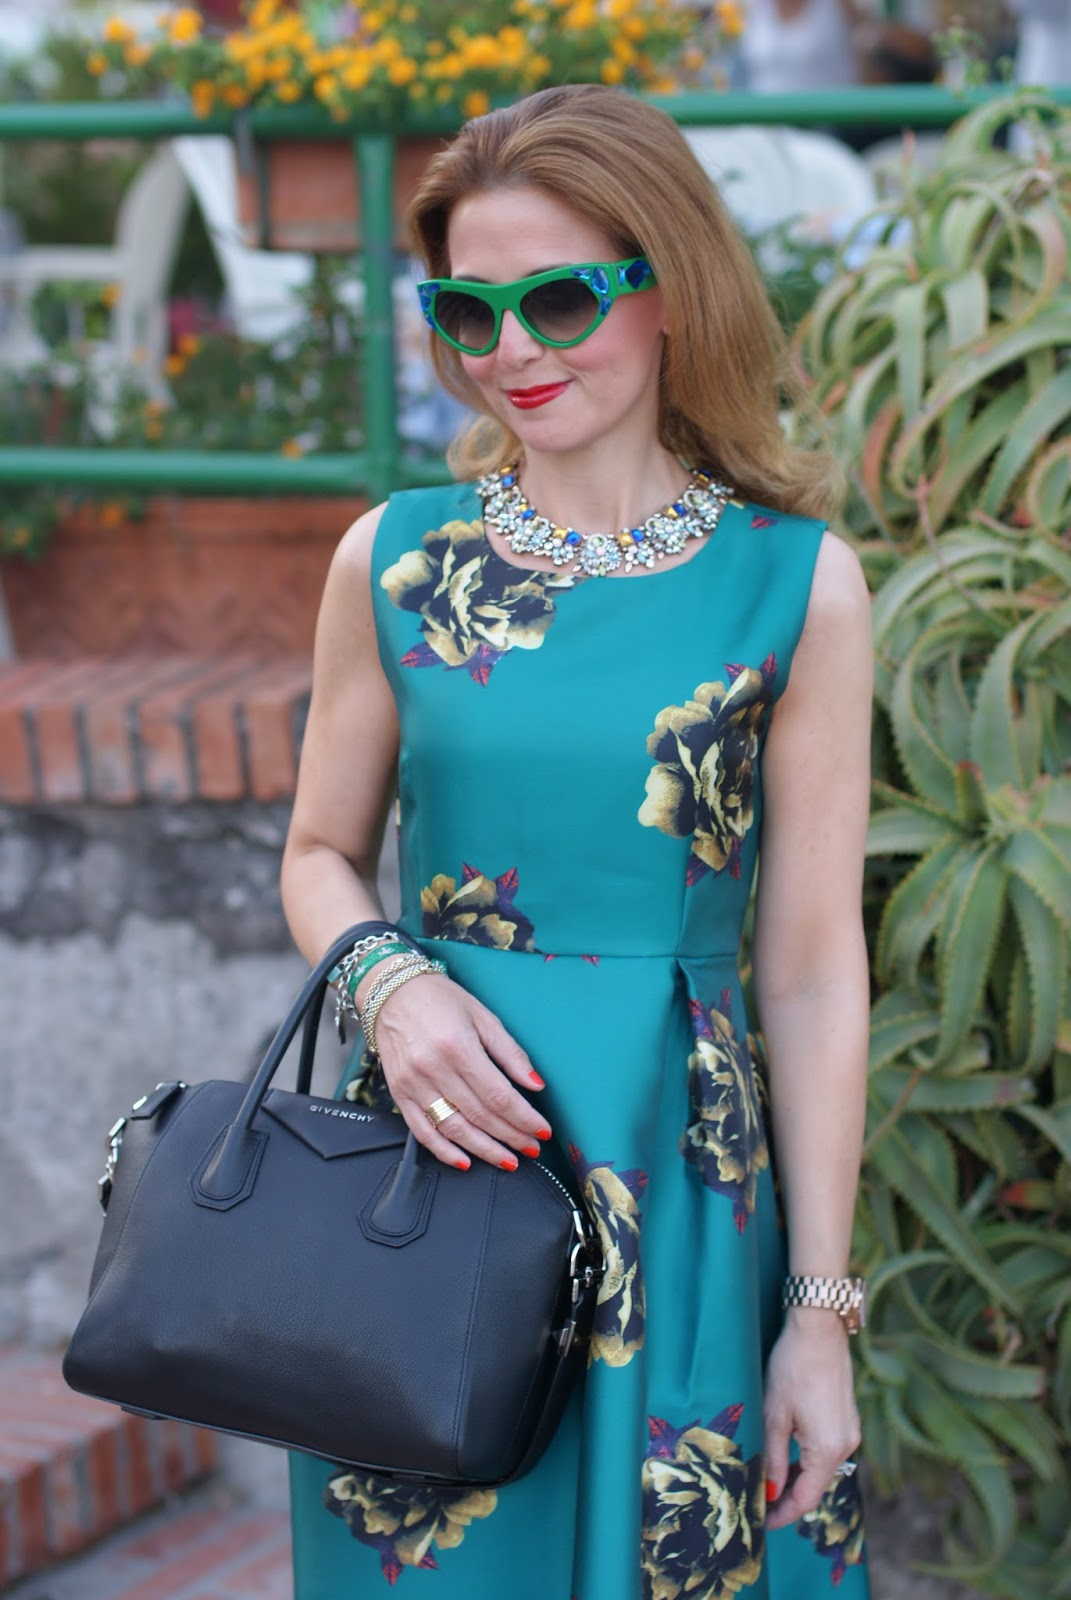 Choies green midi dress, Givenchy Antigona bag and Prada Voice sunglasses found on Giarre on Fashion and Cookies fashion blog, fashion blogger style